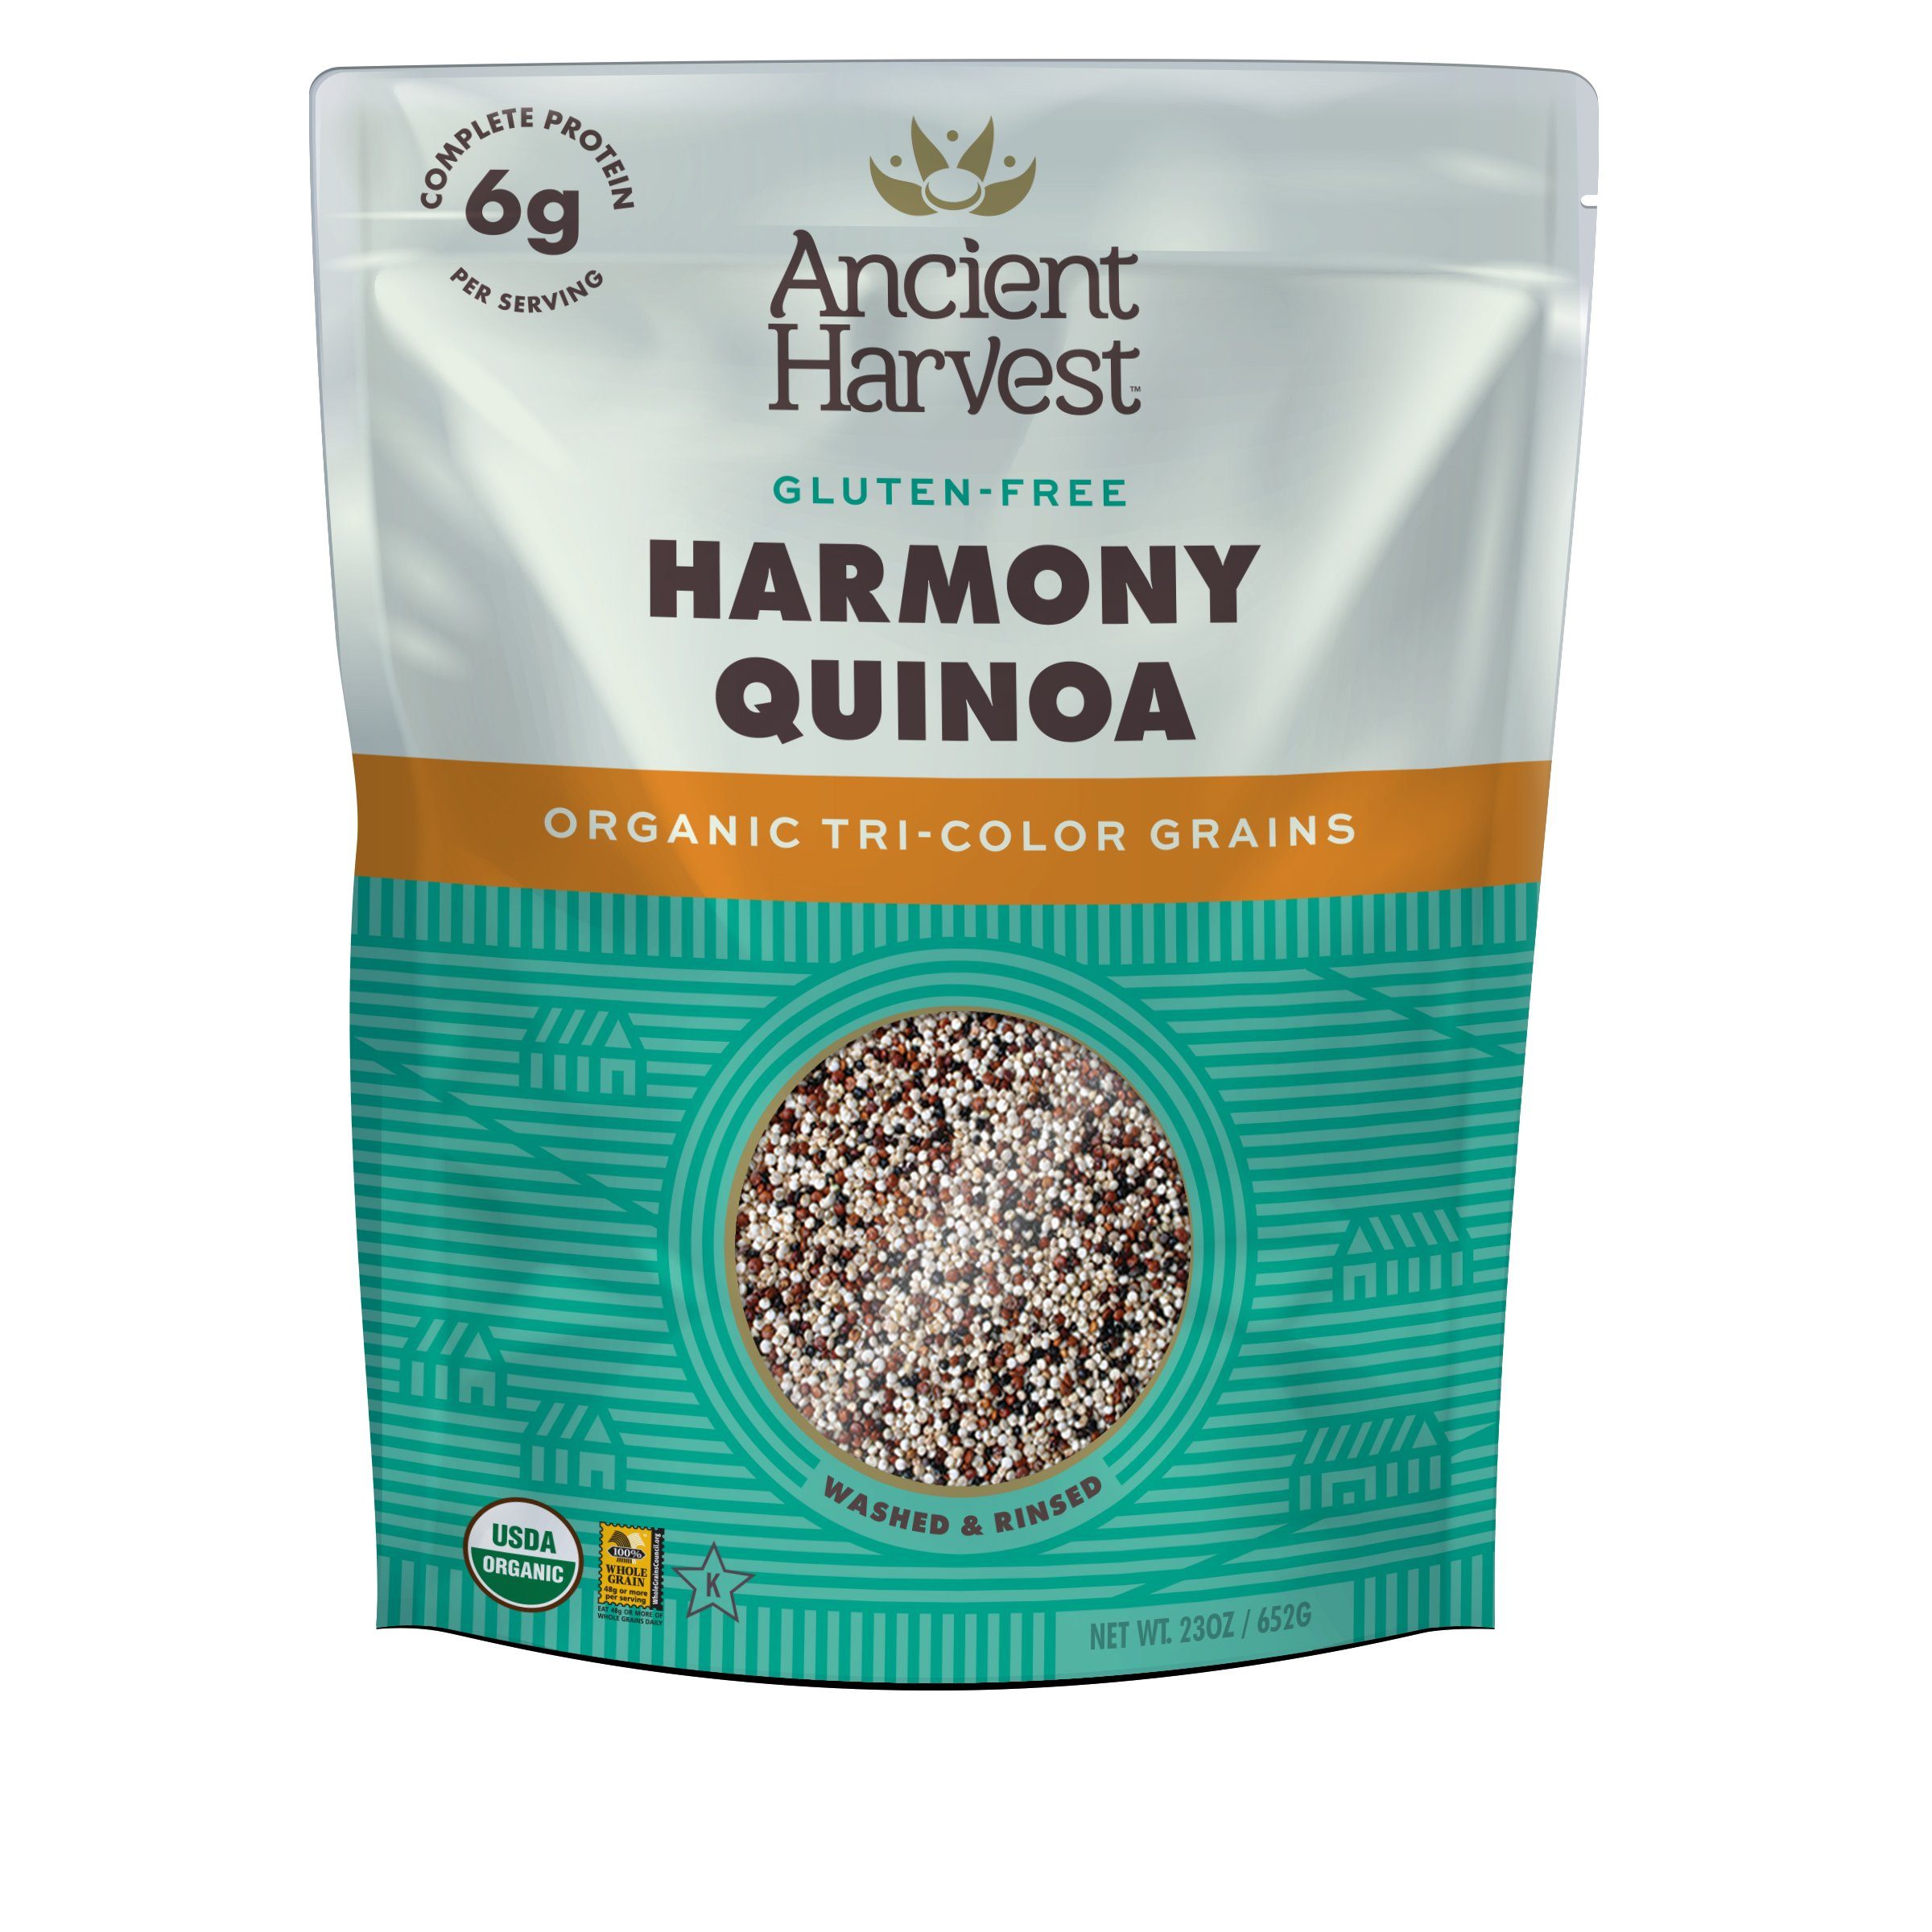 ANCIENT HARVEST Quinoa Harmony Blend Organic, 23 oz